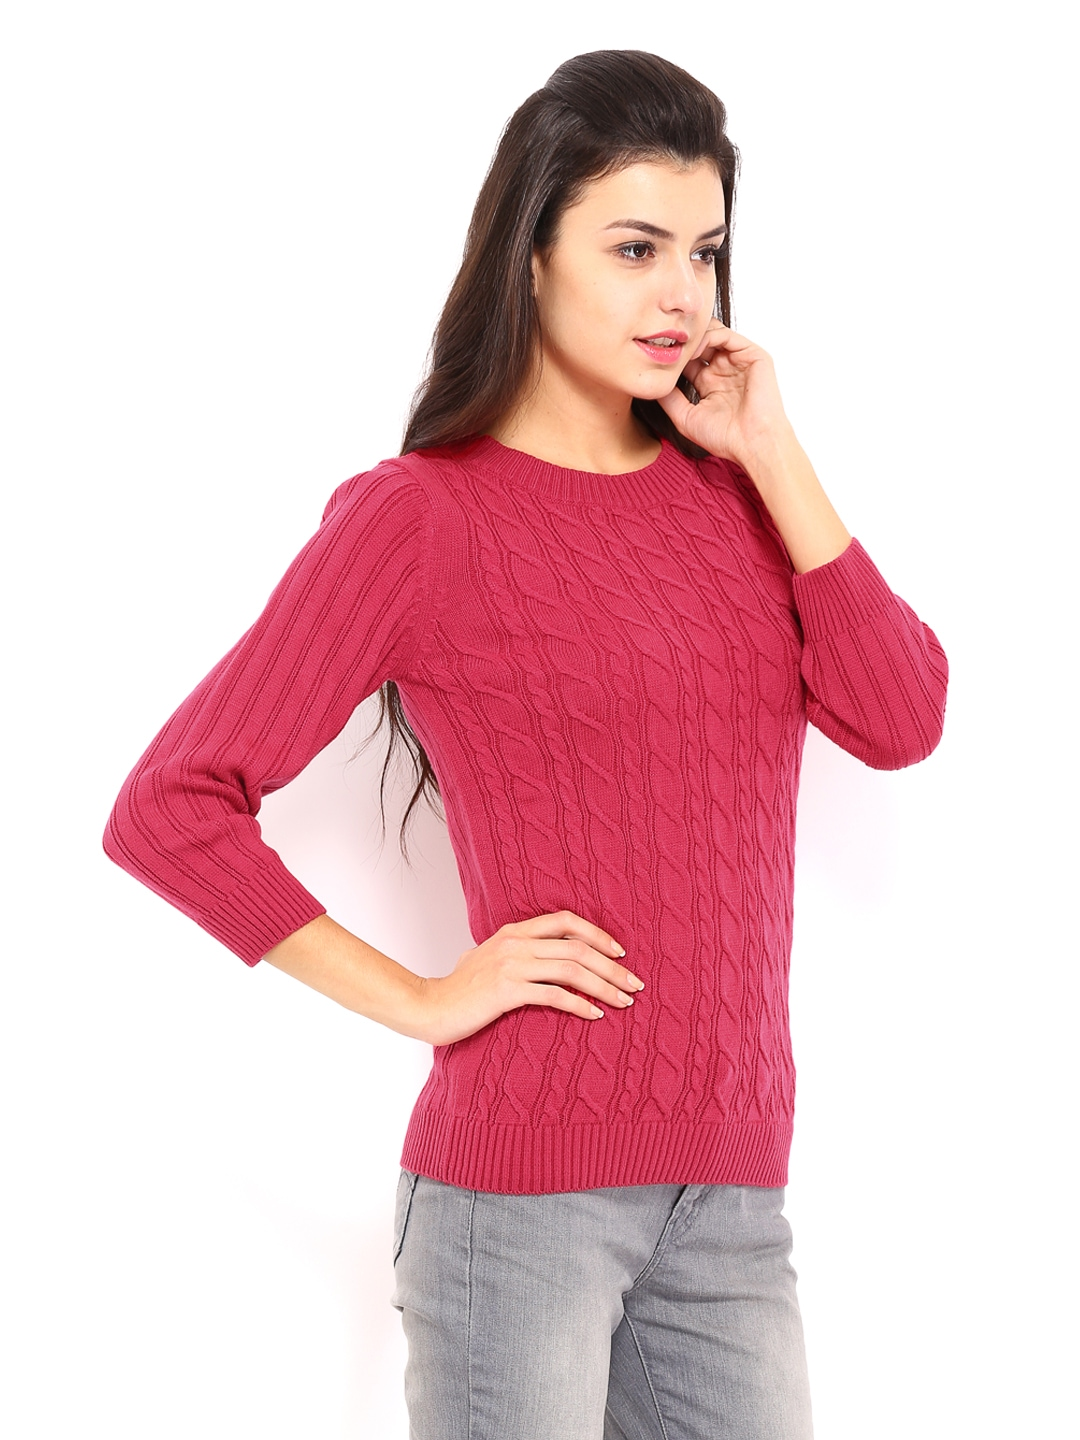 Buy Allen Solly Woman Pink Sweater (multicolor) 7412609 for online ...